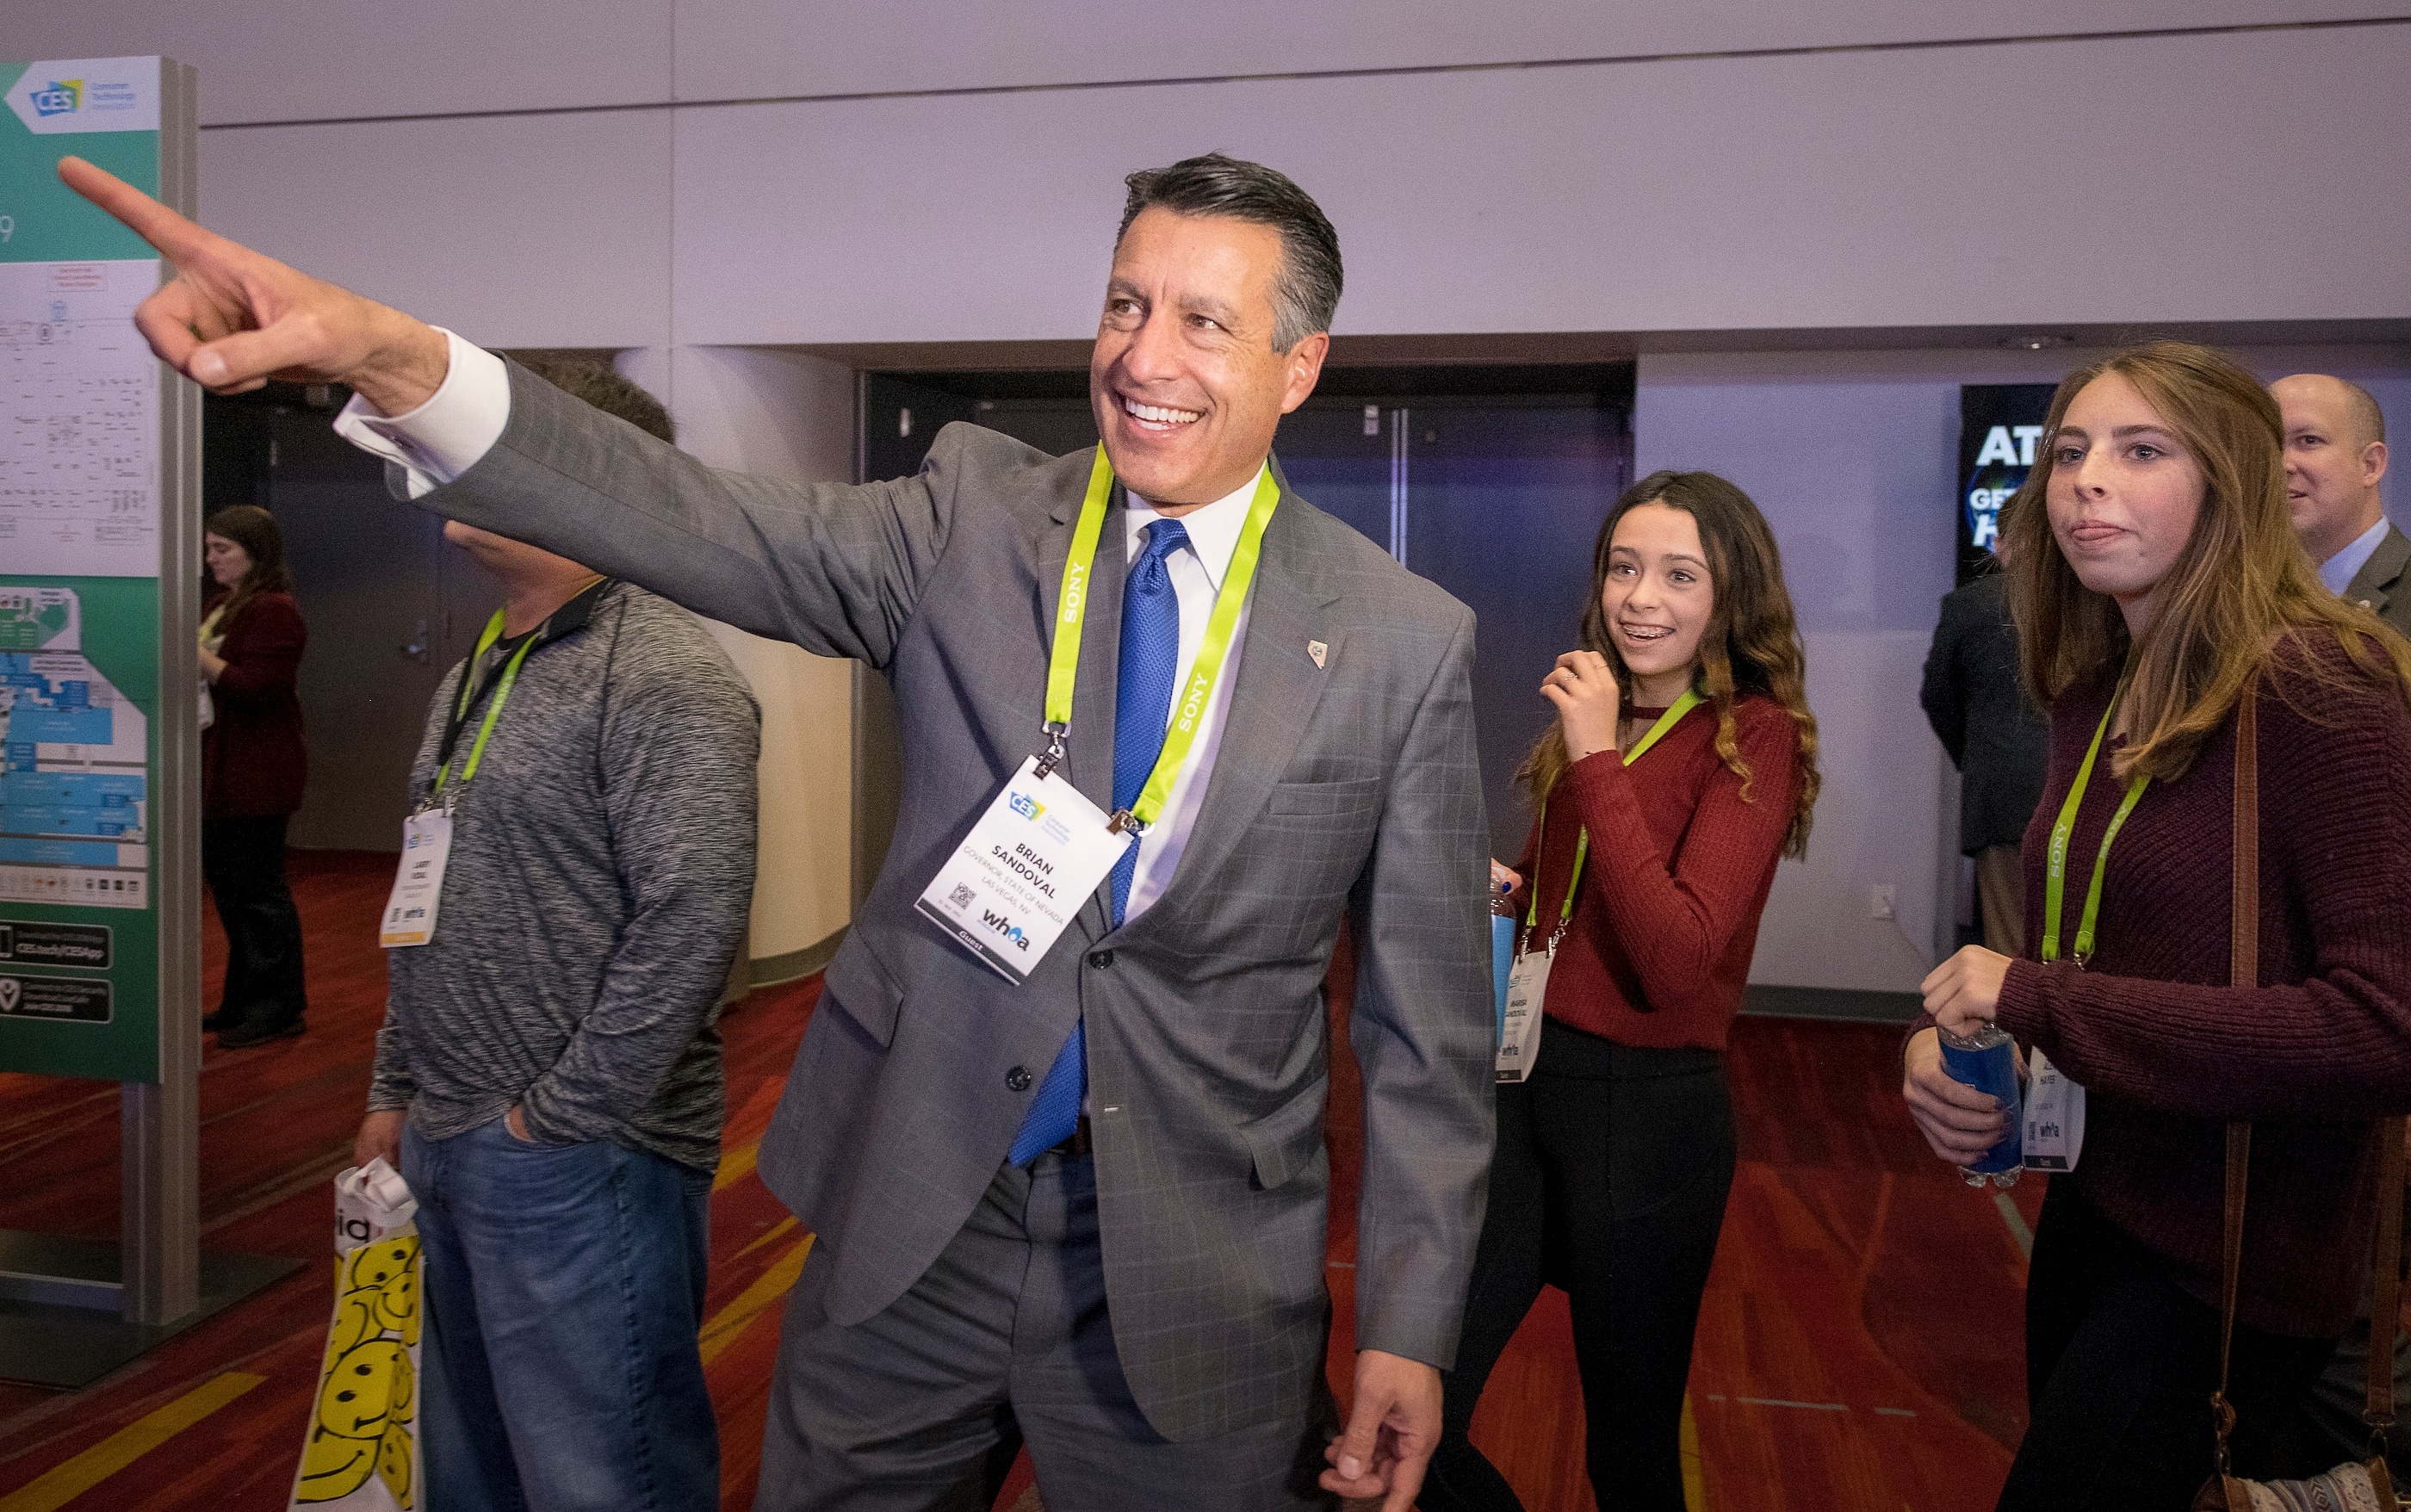 Nevada Governor Brian Sandoval, shows some of the sights of CES to his daughter Marisa Sandoval and her friend Alex Hayes as they tour  CES at the Las Vegas Convention Center on Thursday, Jan. 11, 2018. CREDIT: Mark Damon/Las Vegas News Bureau